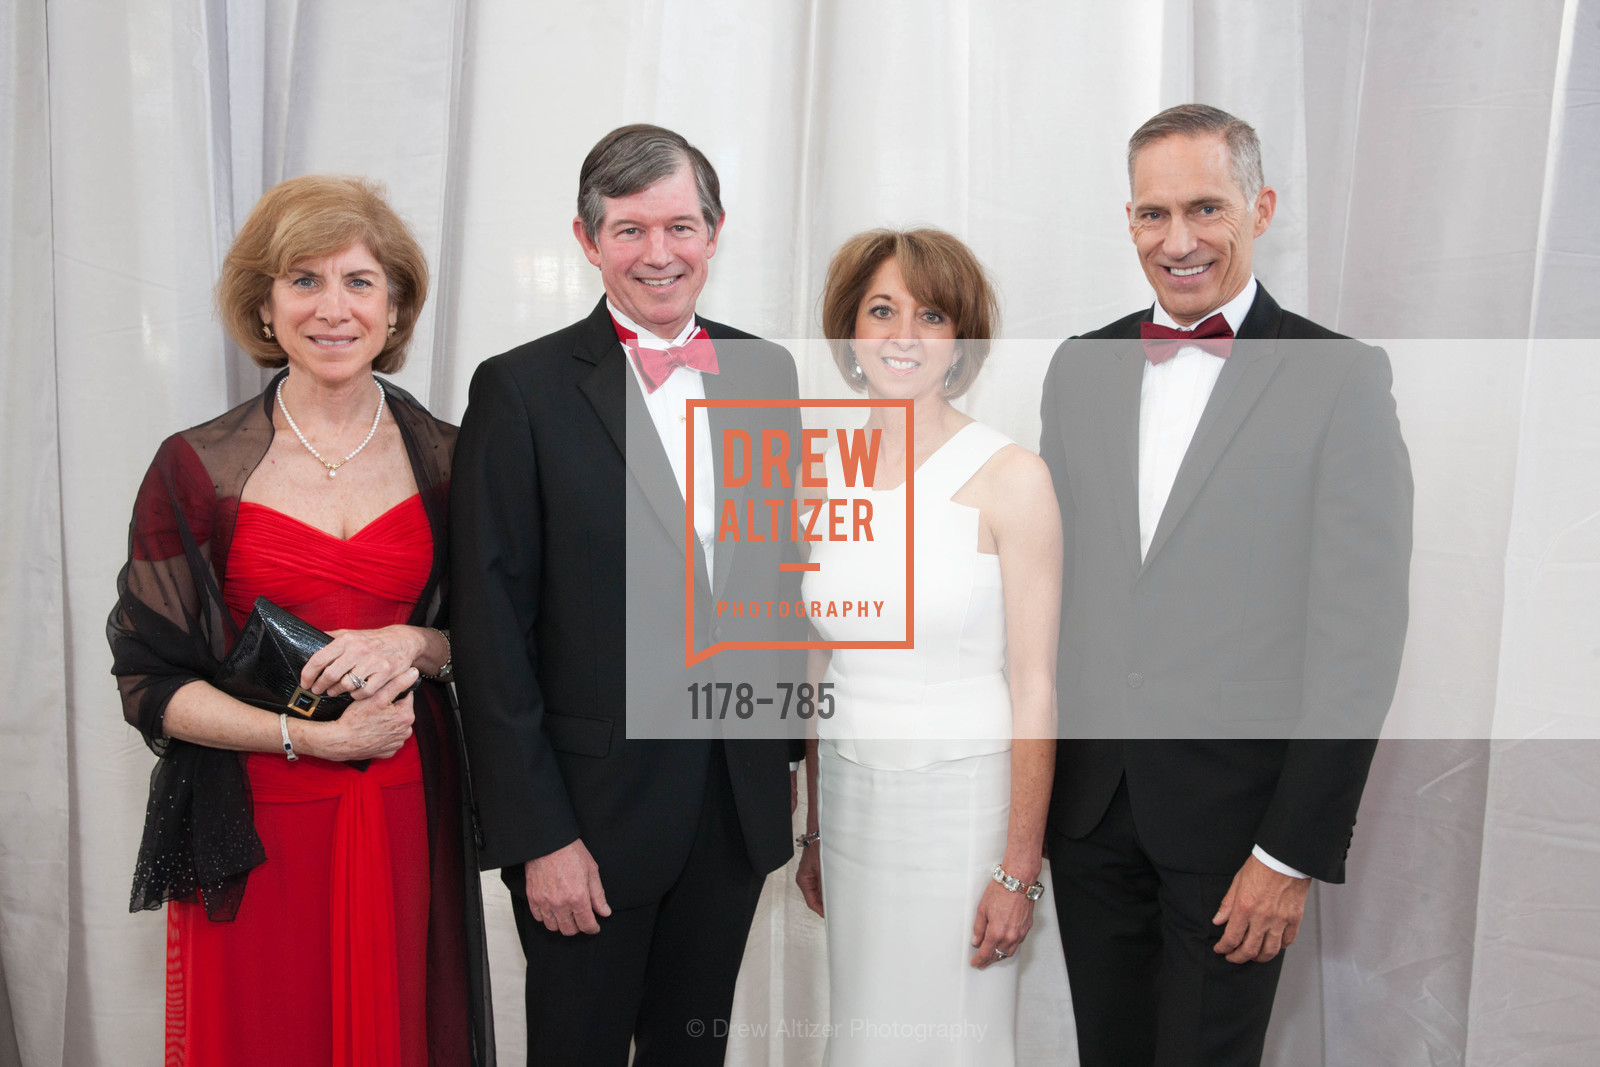 Gail McGovern, Anthony Earley, Teresa Briggs, Mark Cloutier, 2015 RED CROSS Gala, US, April 12th, 2015,Drew Altizer, Drew Altizer Photography, full-service agency, private events, San Francisco photographer, photographer california